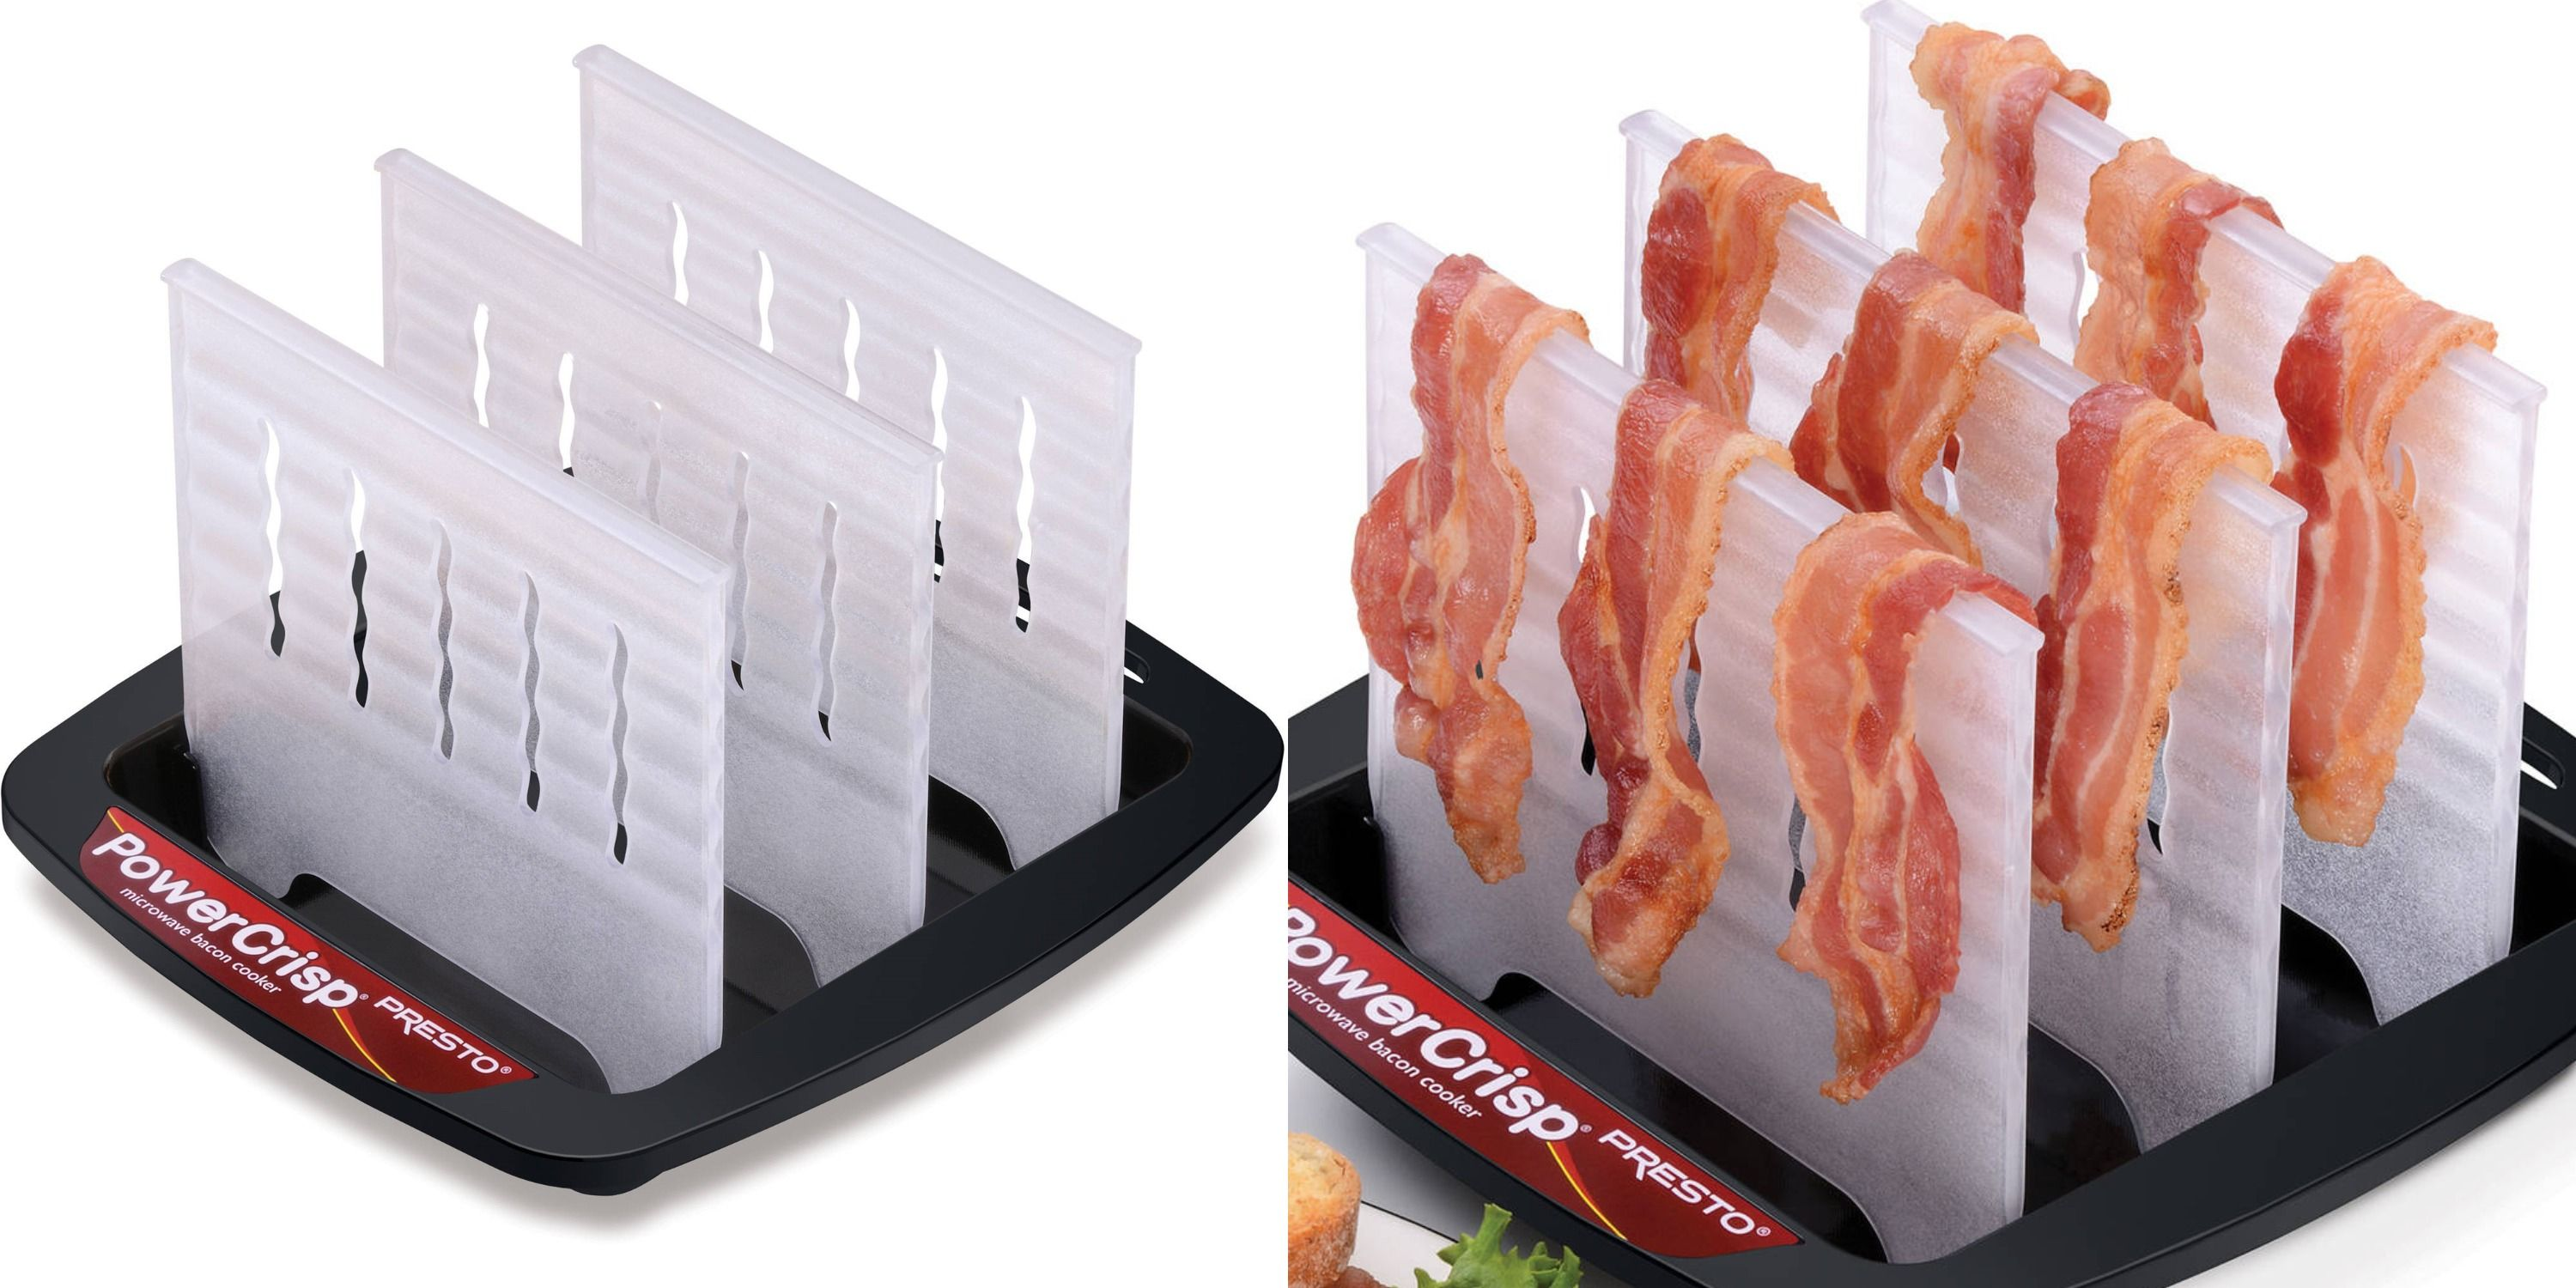 crispy bacon in the microwave